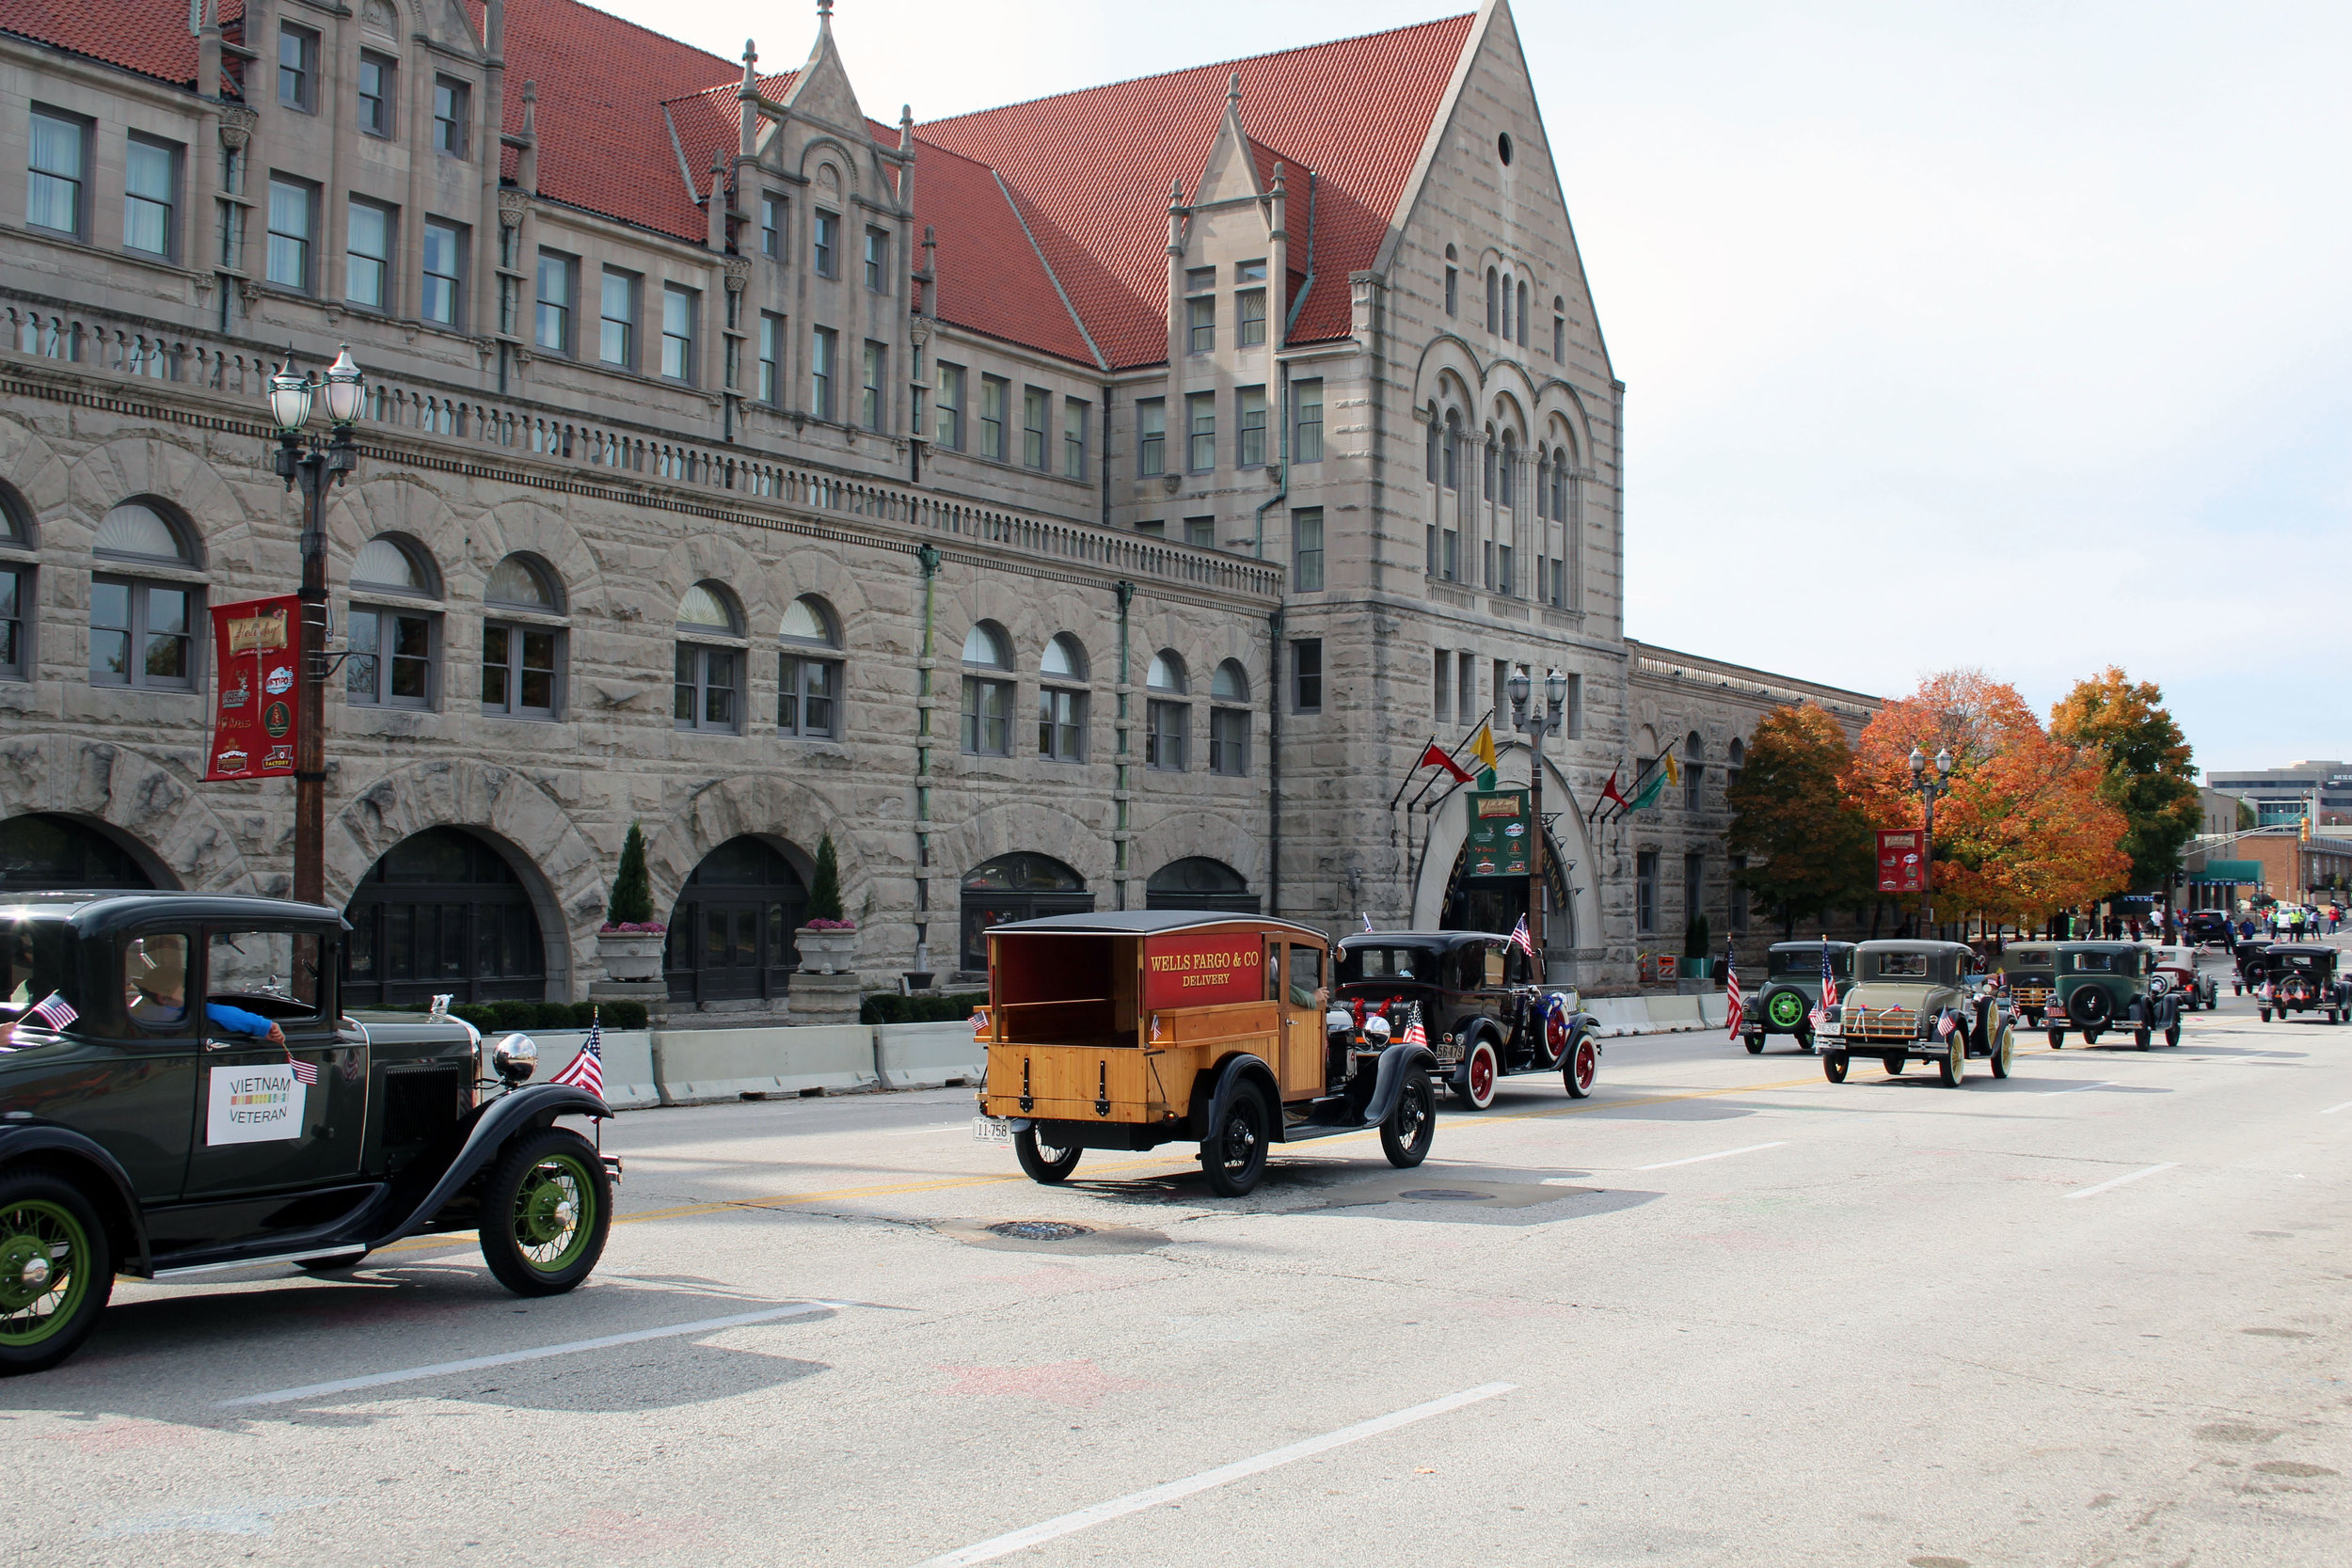 Model A's parading in front of Union Station in St. Louis, MO